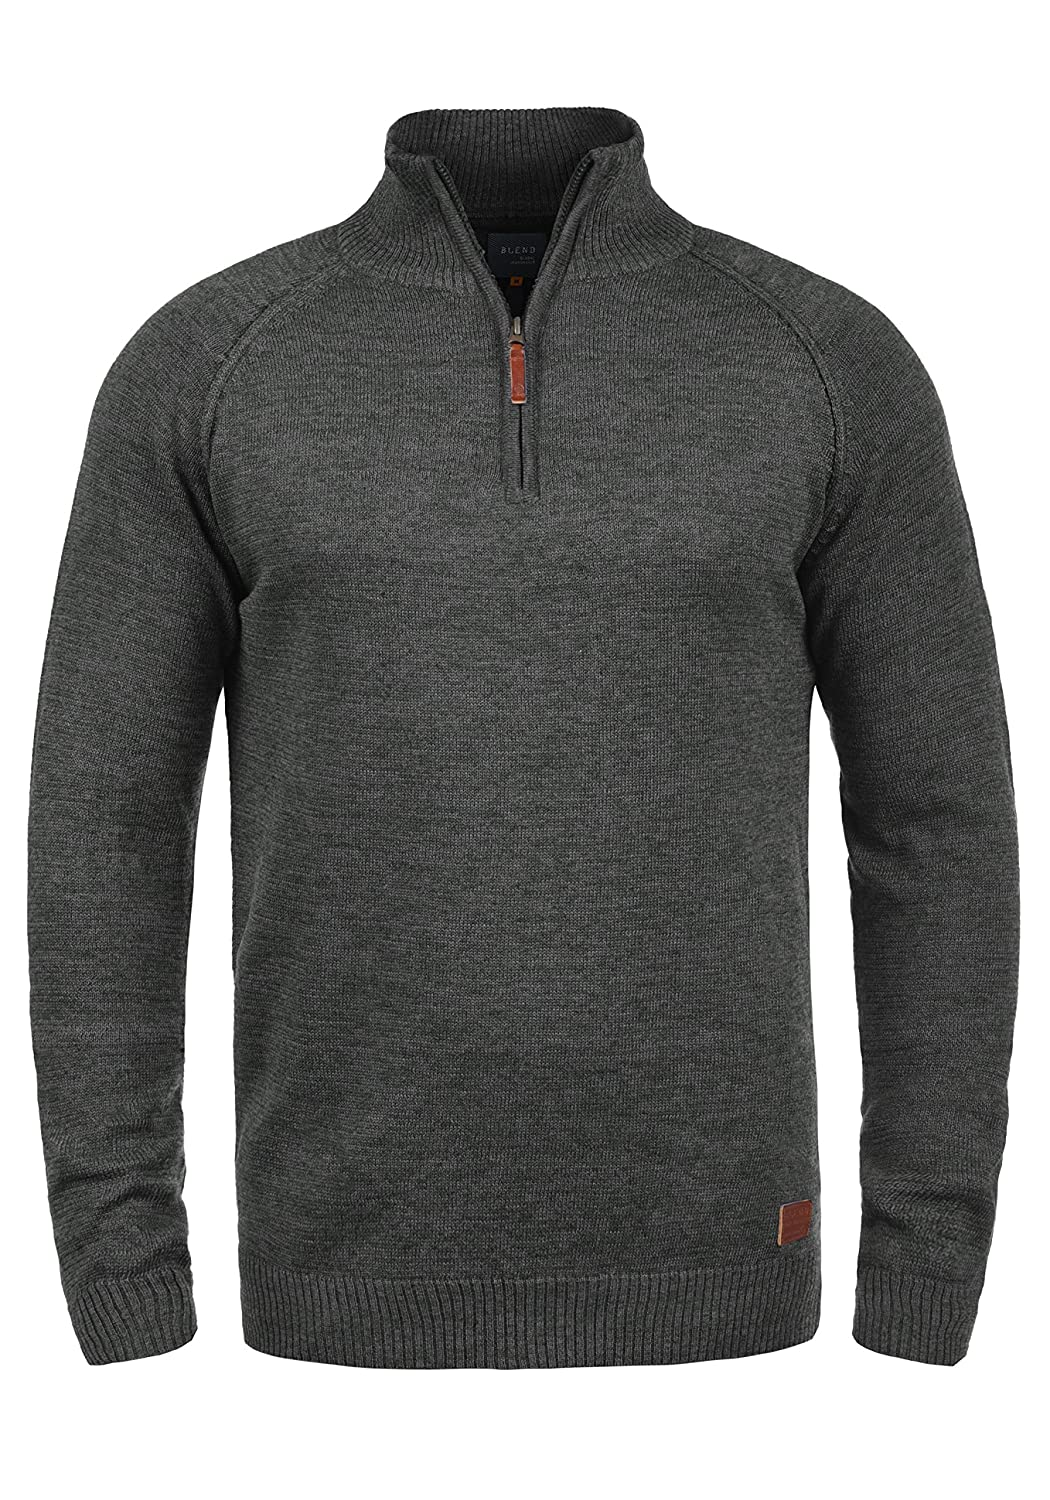 BLEND Danovan Men's knit Pullover